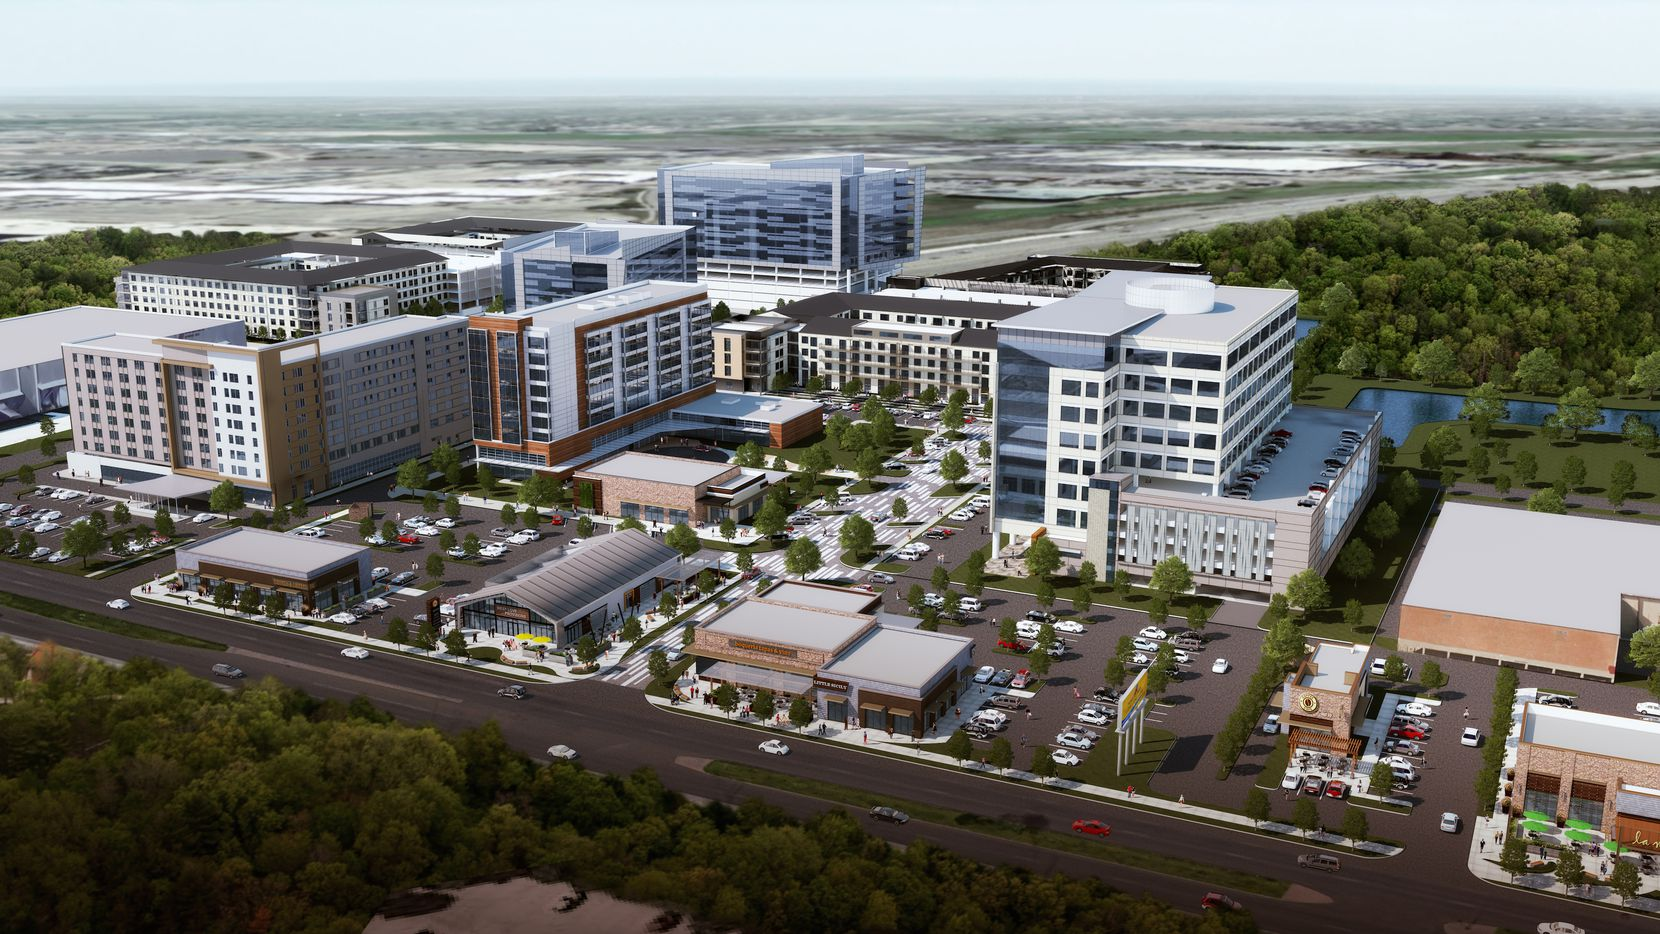 The $320 million West Love project includes hotel rooms, apartments and, soon, restaurants and retail.